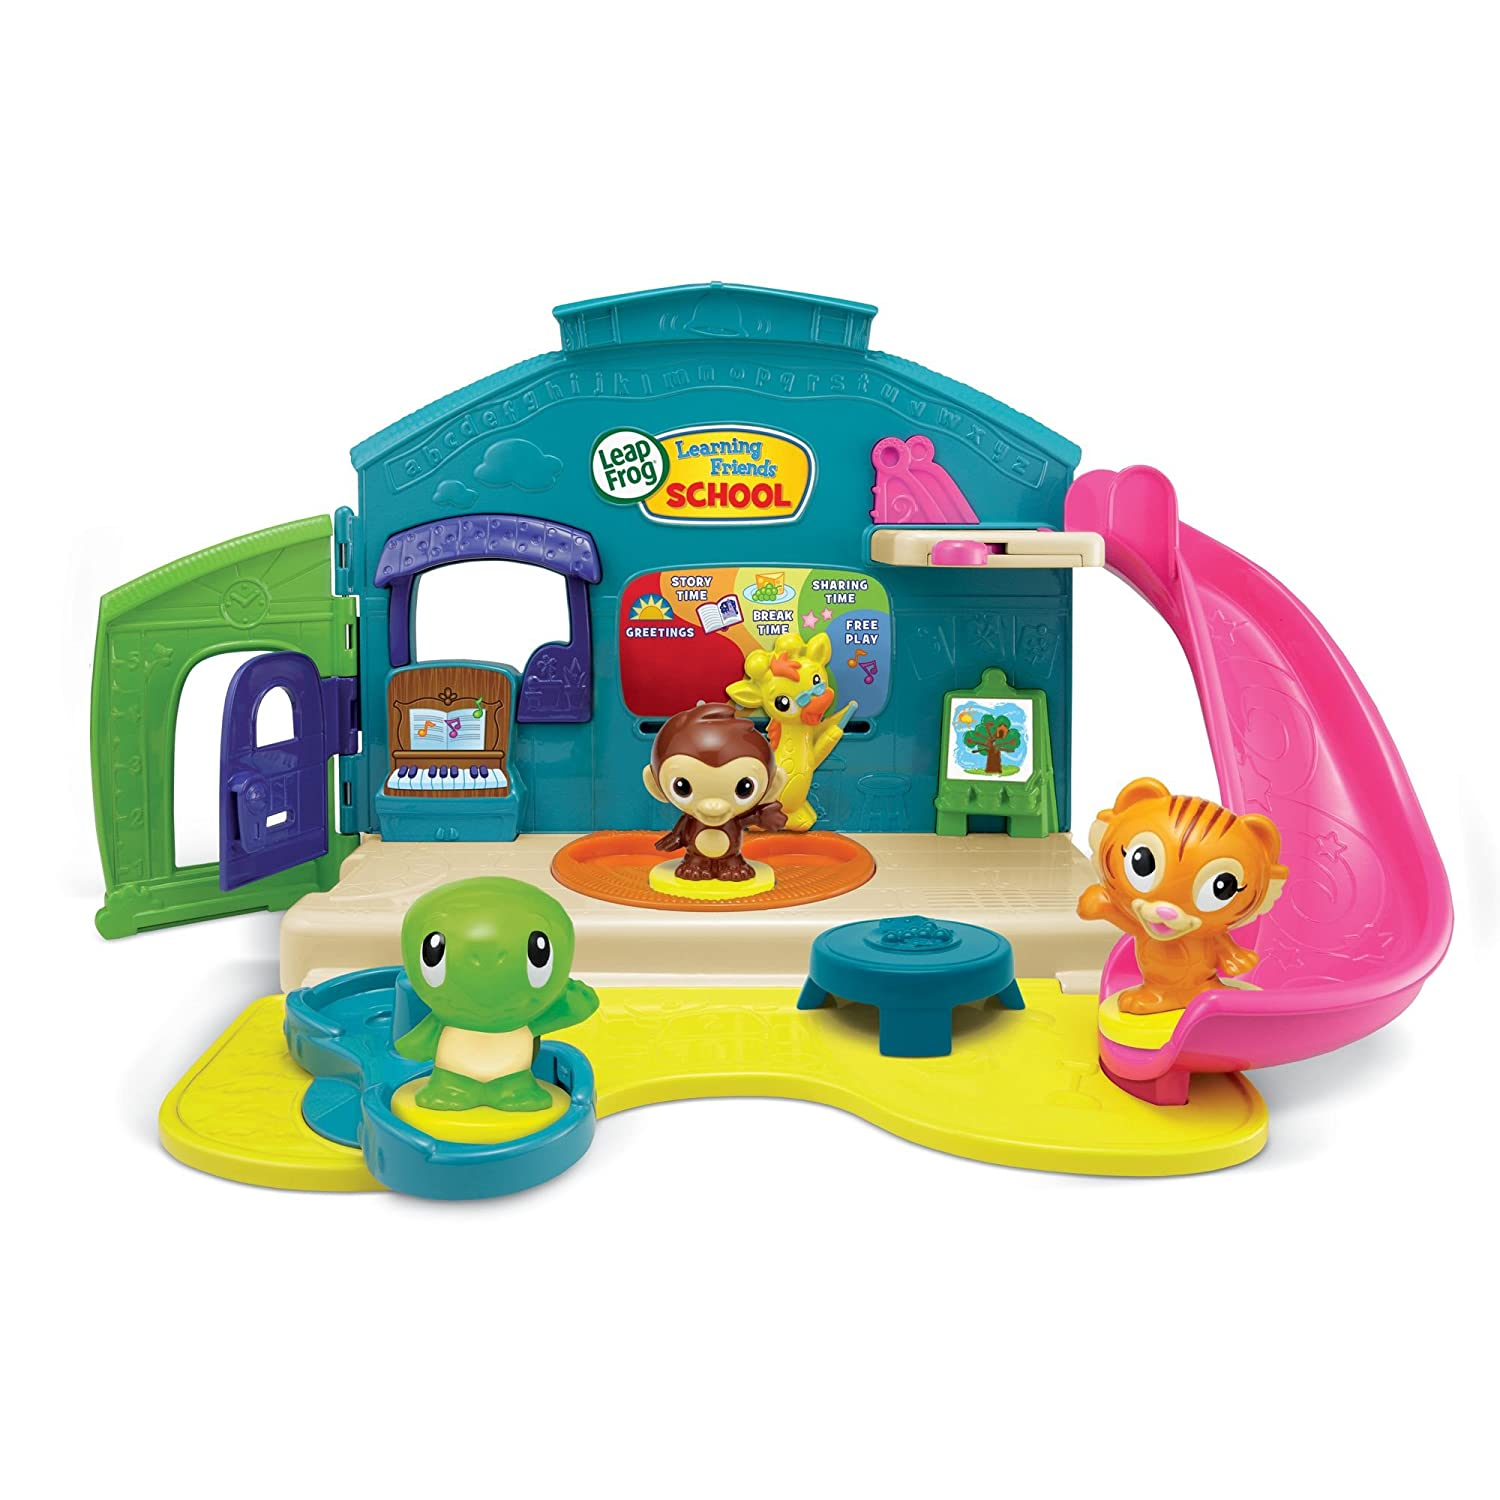 LeapFrog Learning Friends Play and Discover School Playset